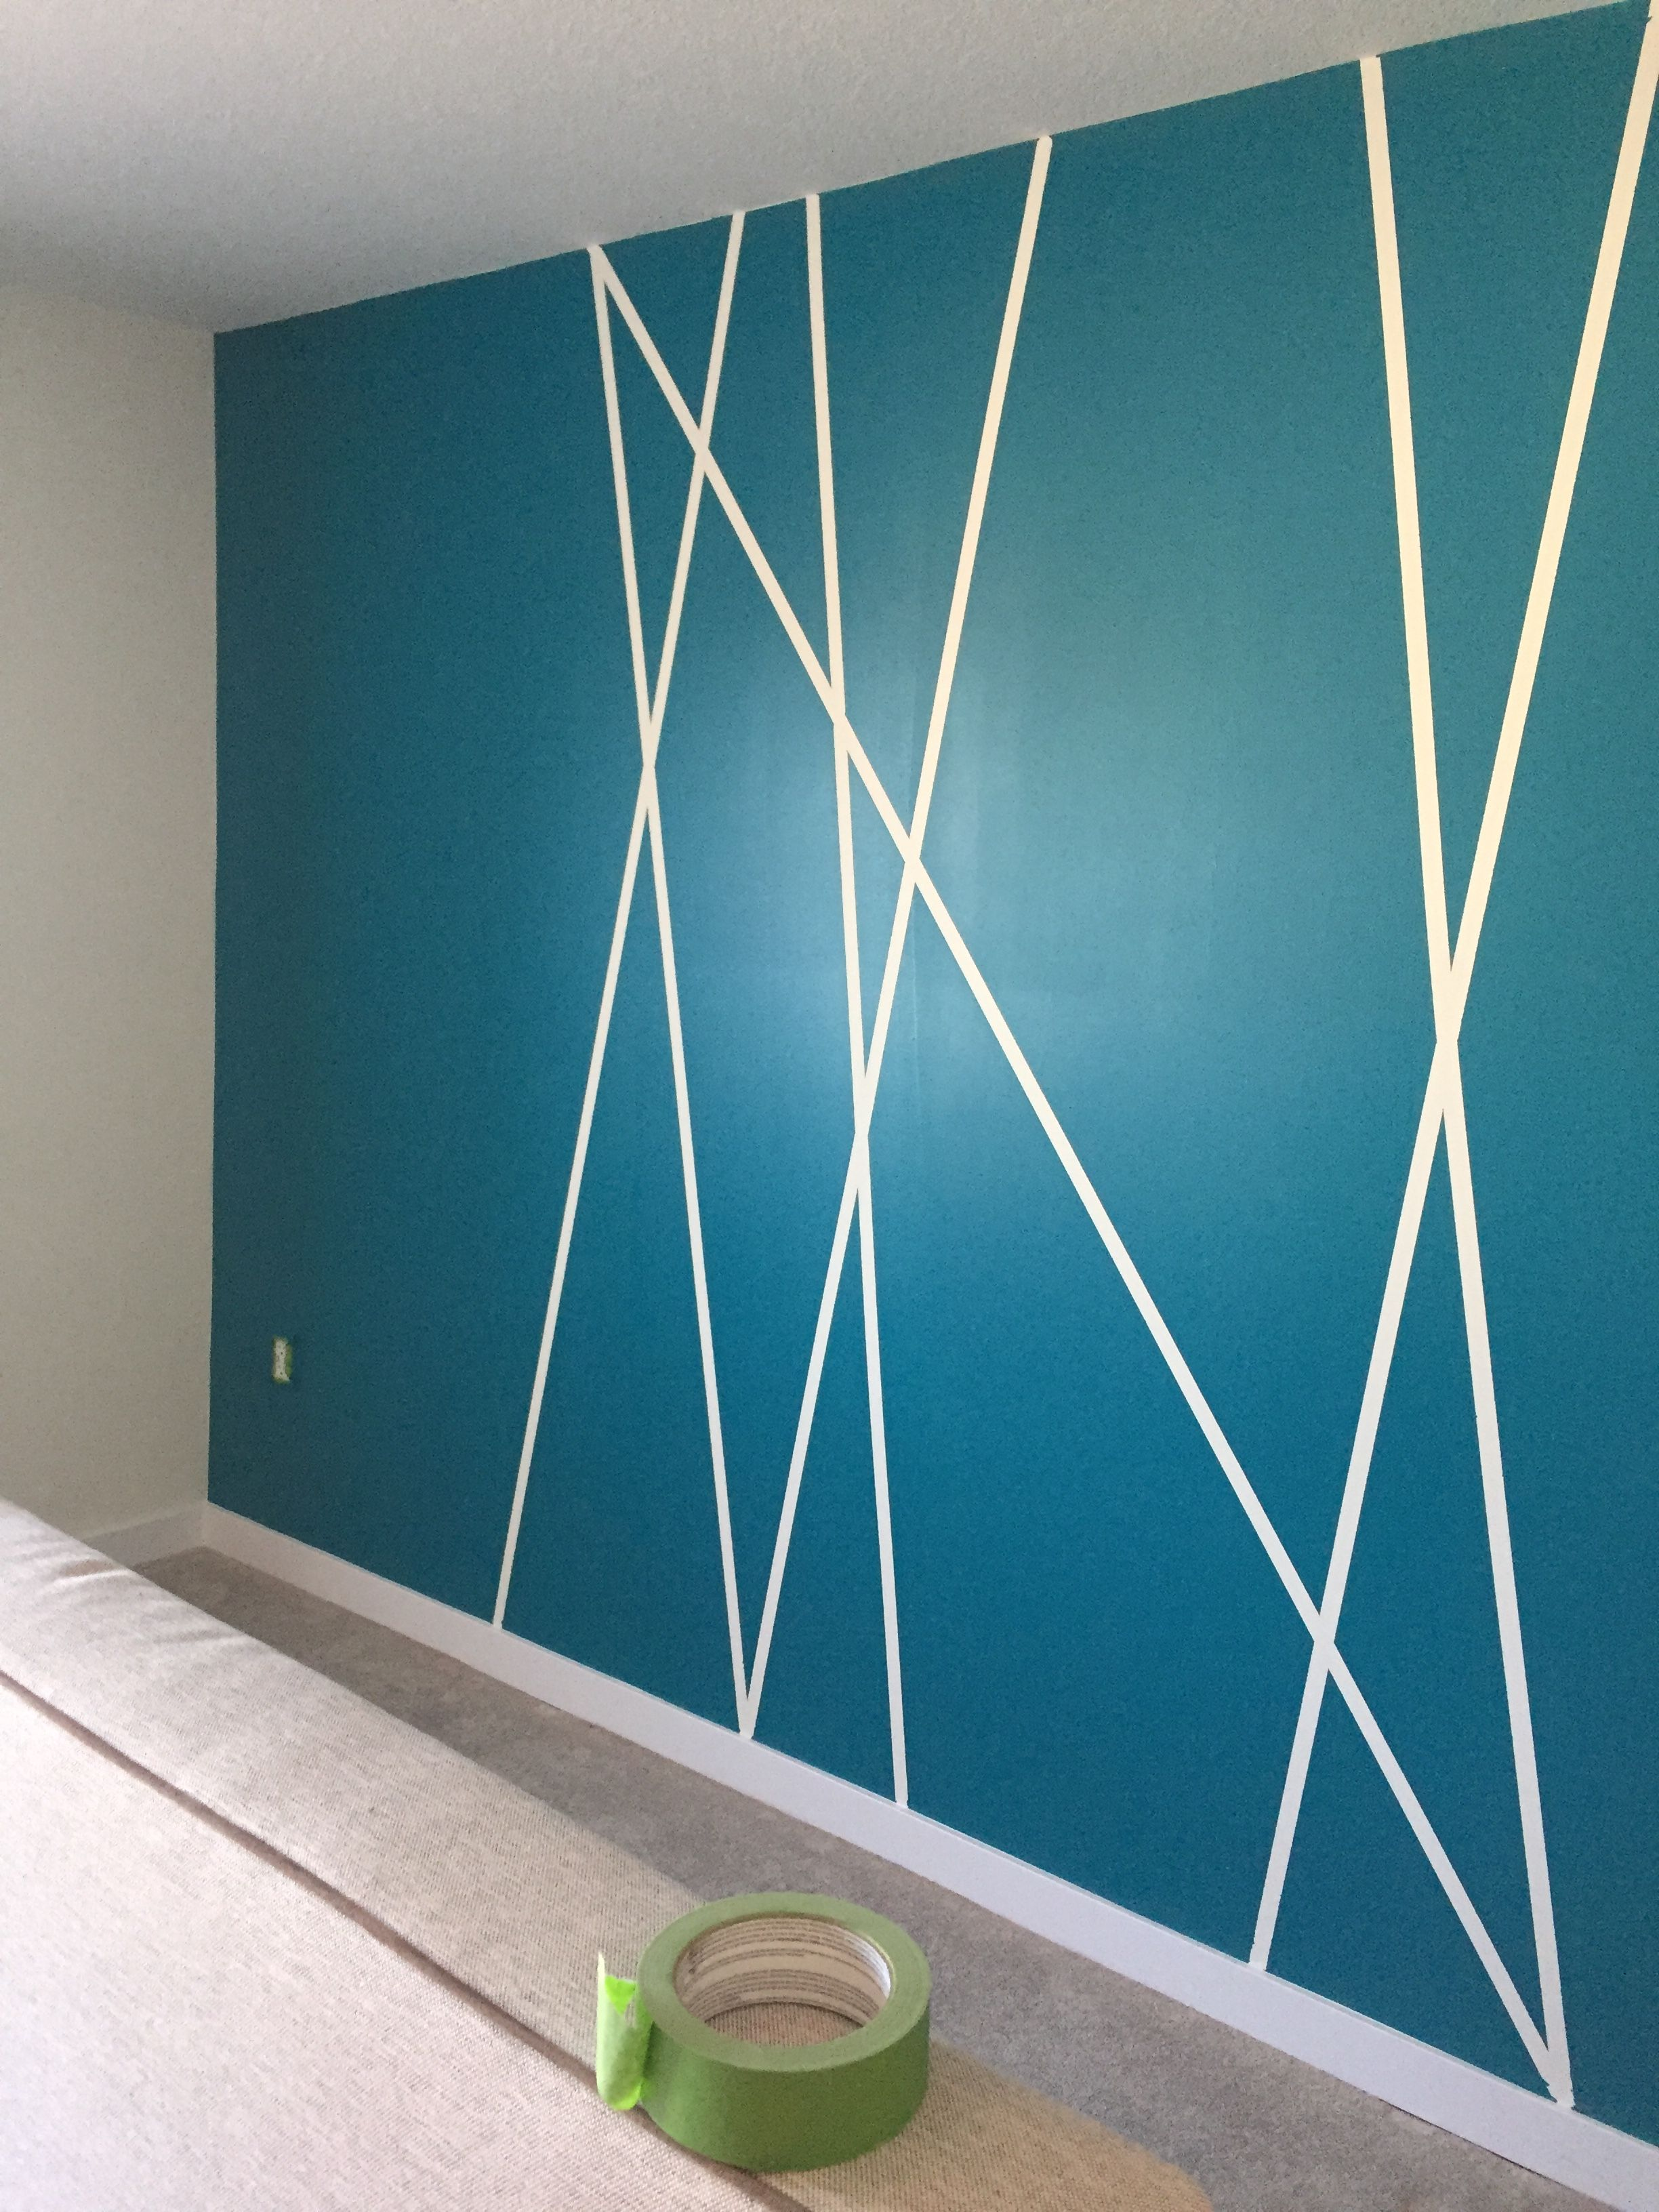 Diy Accent Wall Using Painters Tape Easy And Inexpensive Way For